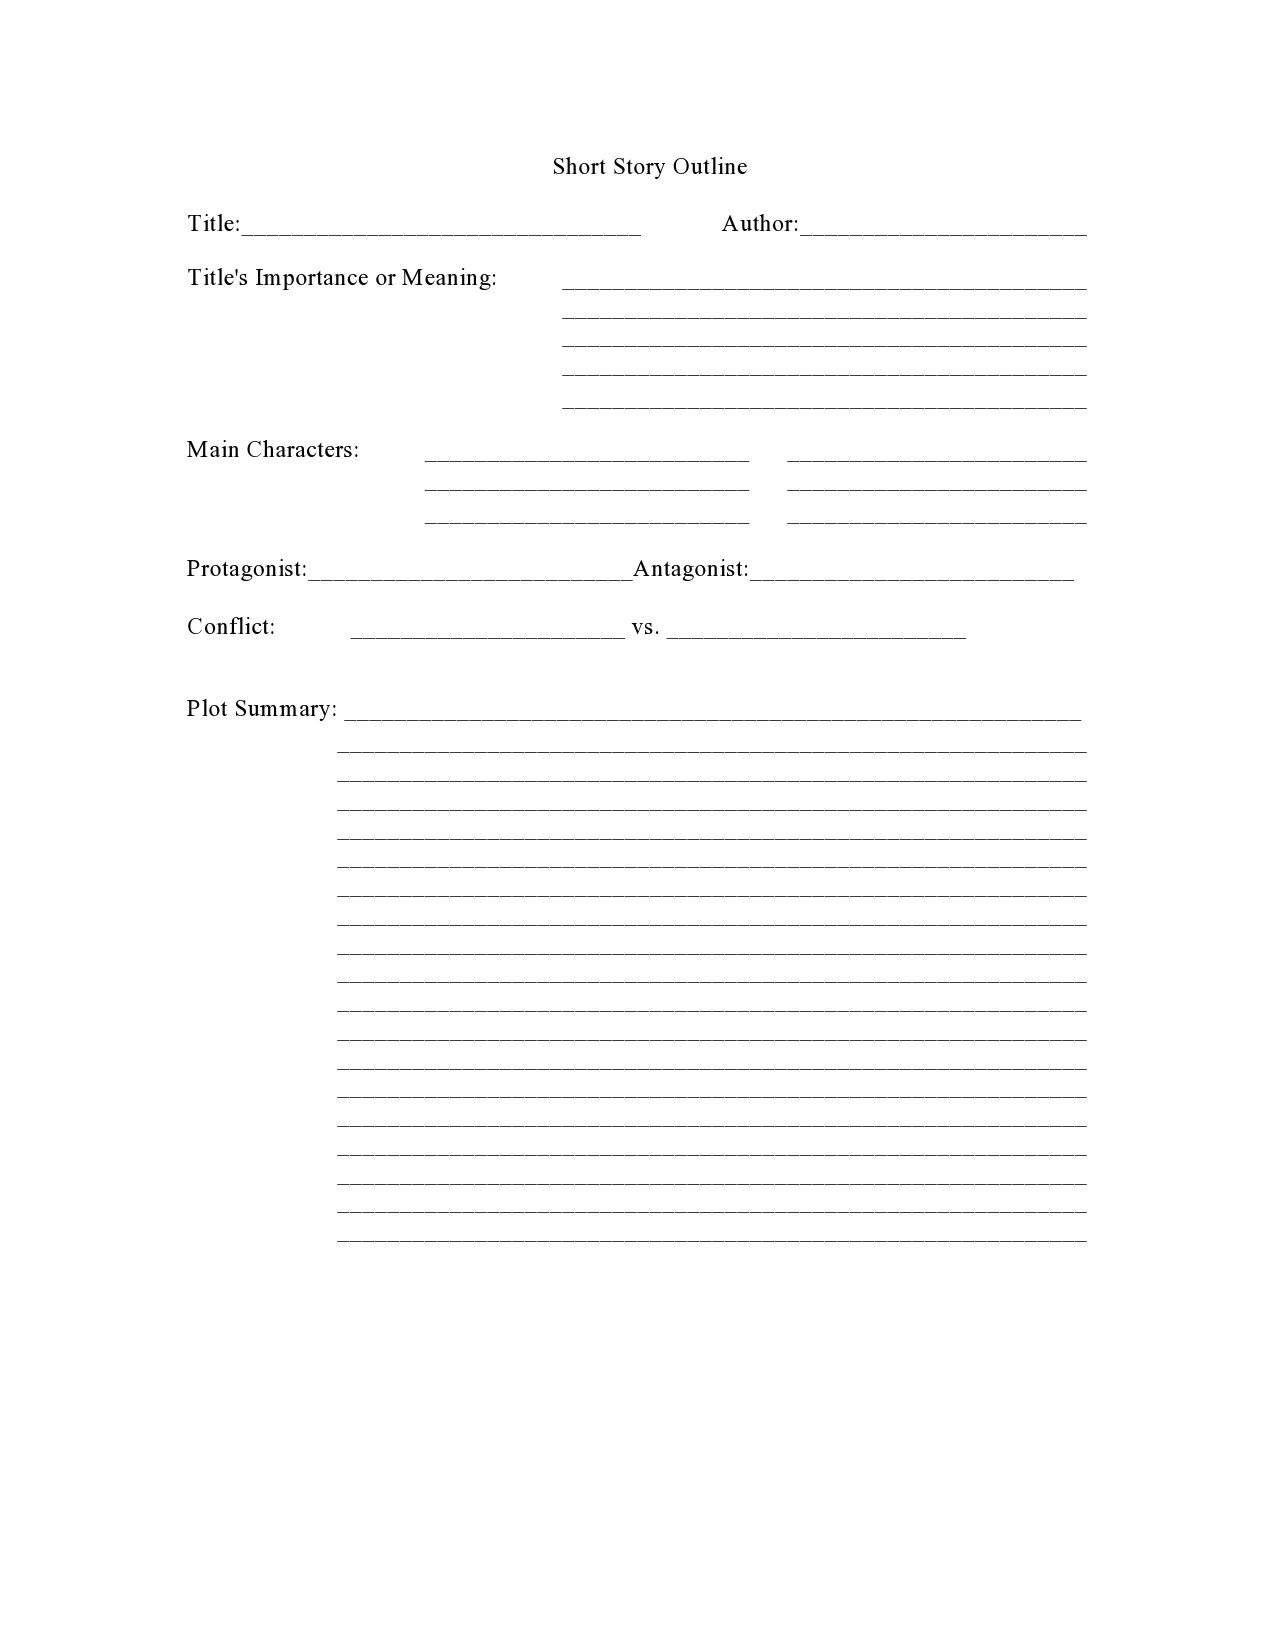 Free story outline template 21